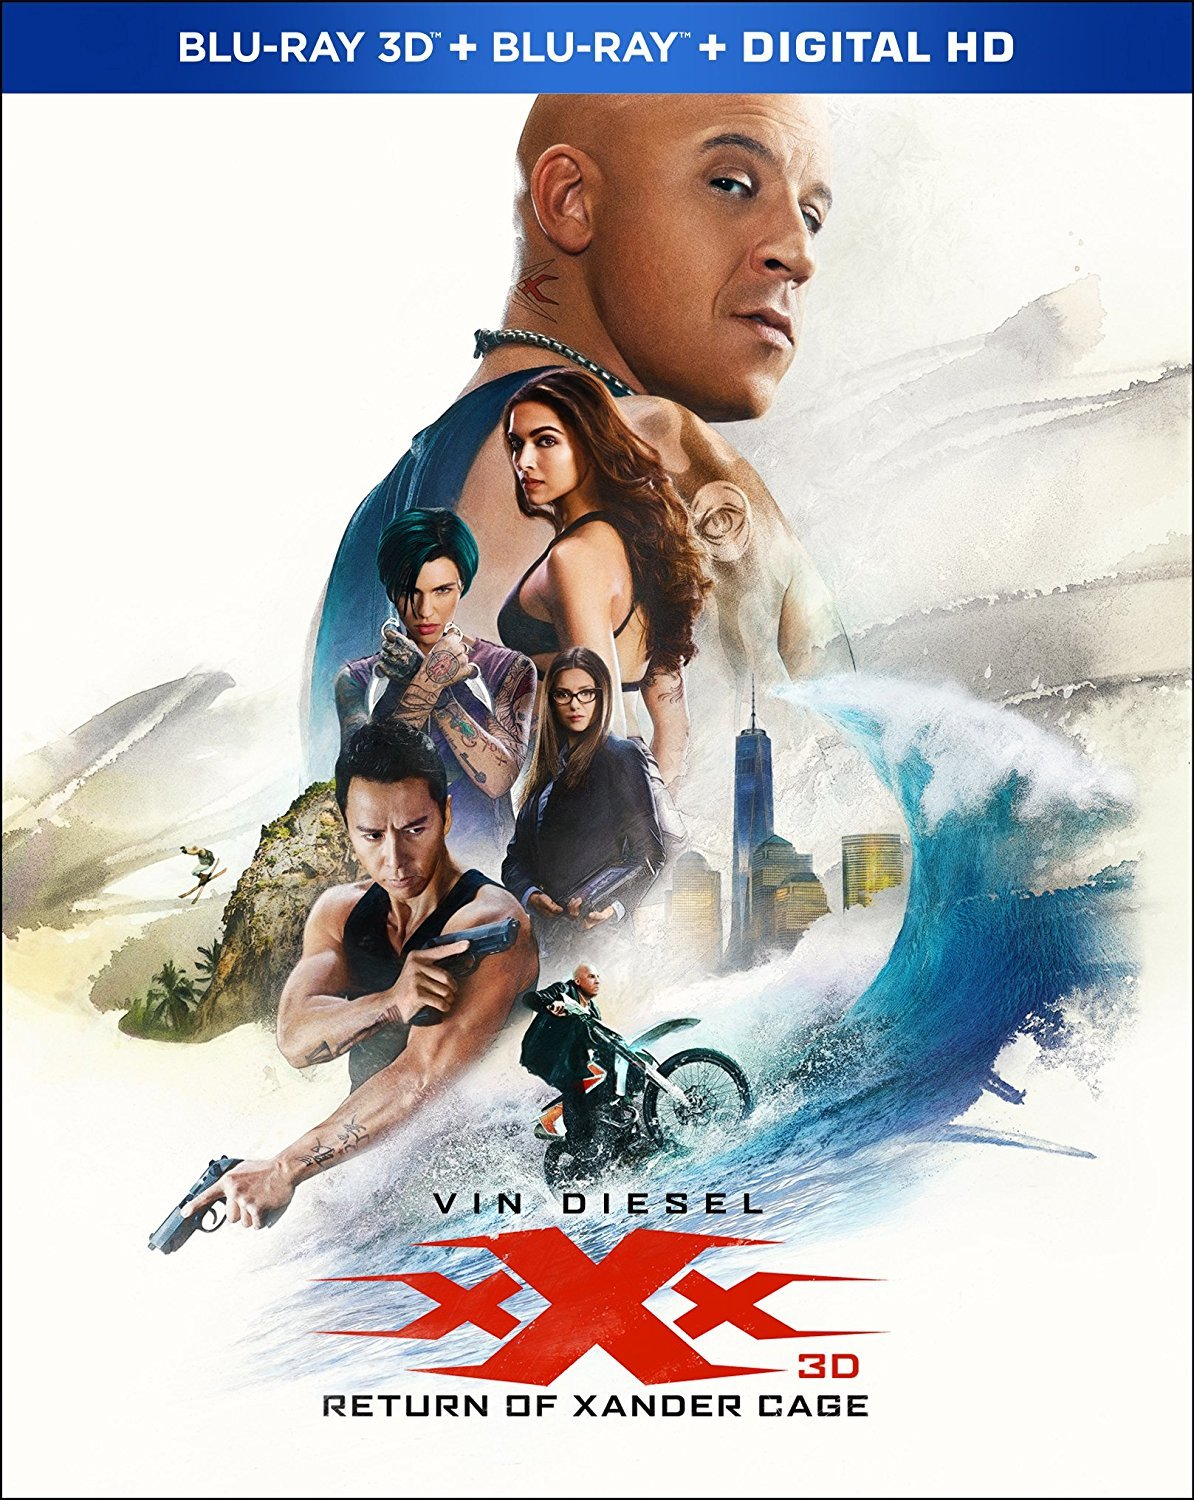 xXx: Return of Xander Cage (2017) poster image